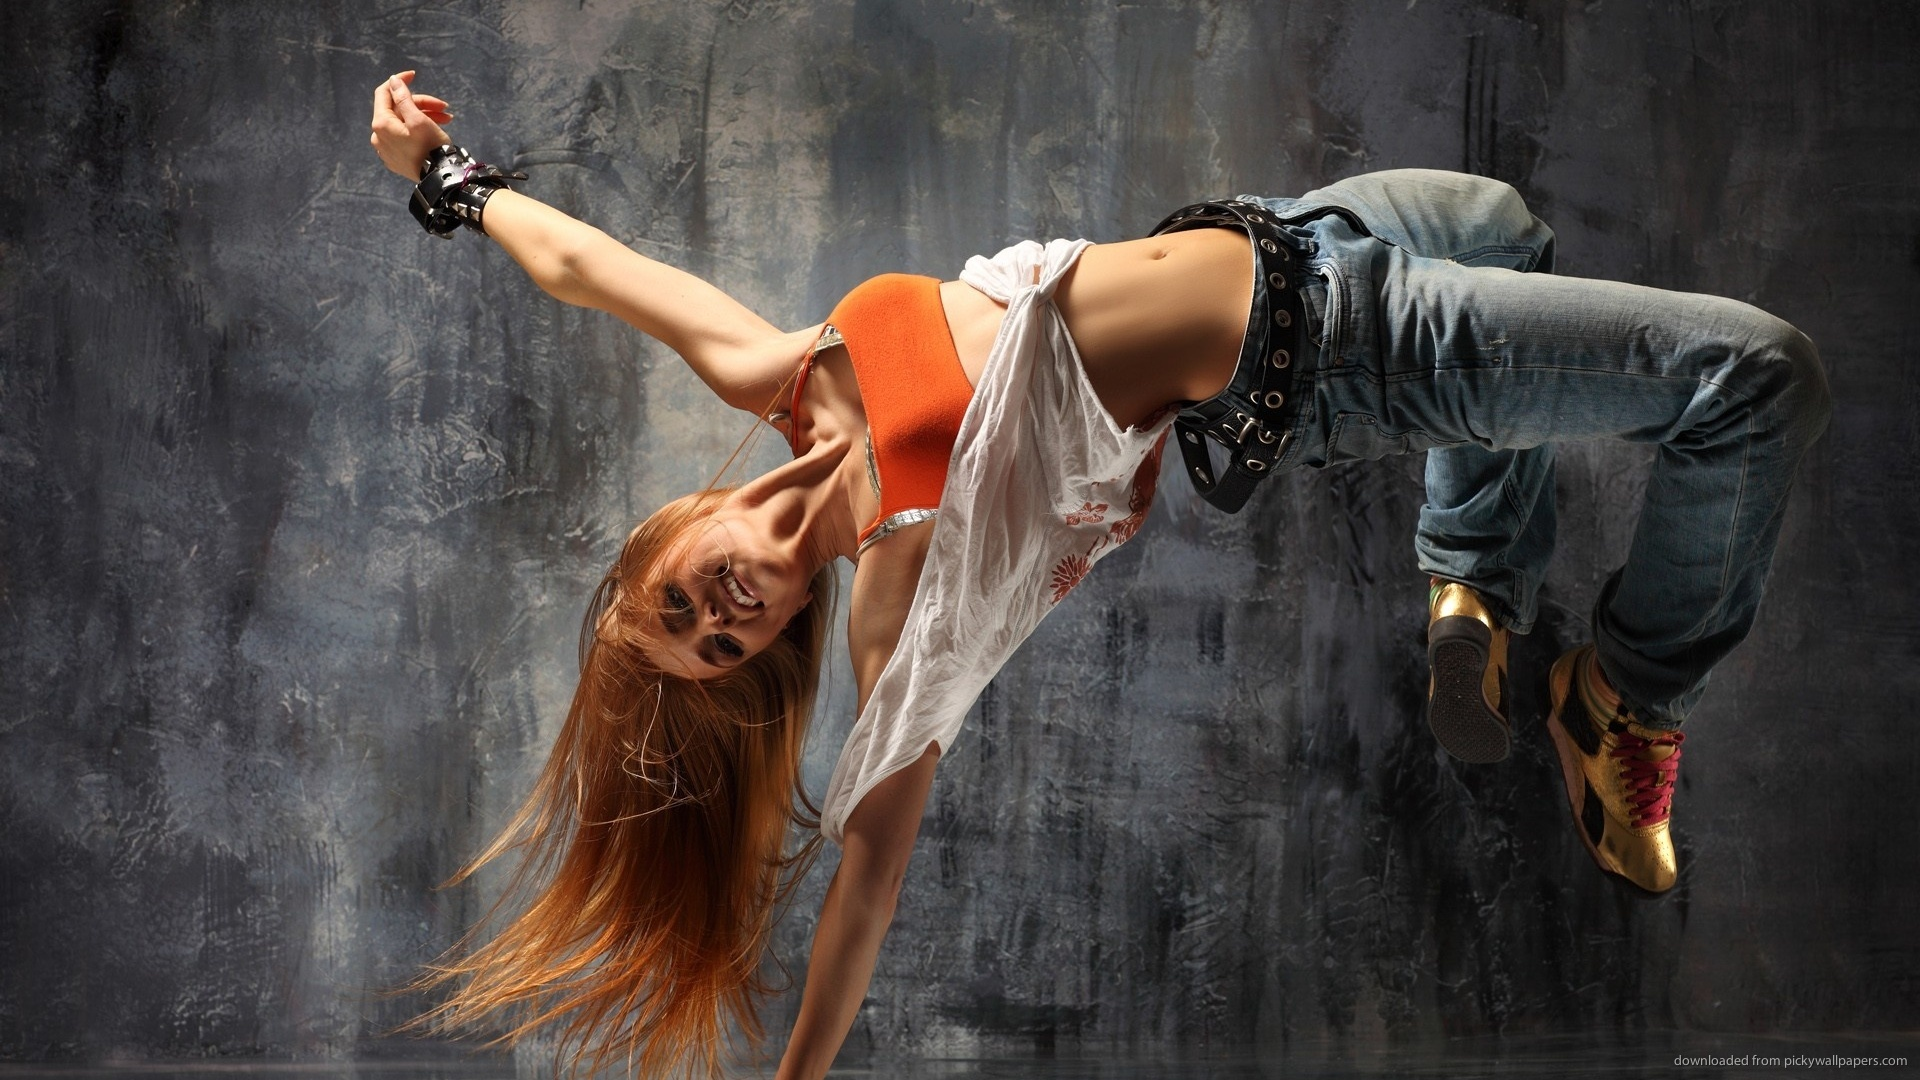 Hip Hop Dance Picture For iPhone Blackberry iPad Hip Hop Dance 1920x1080